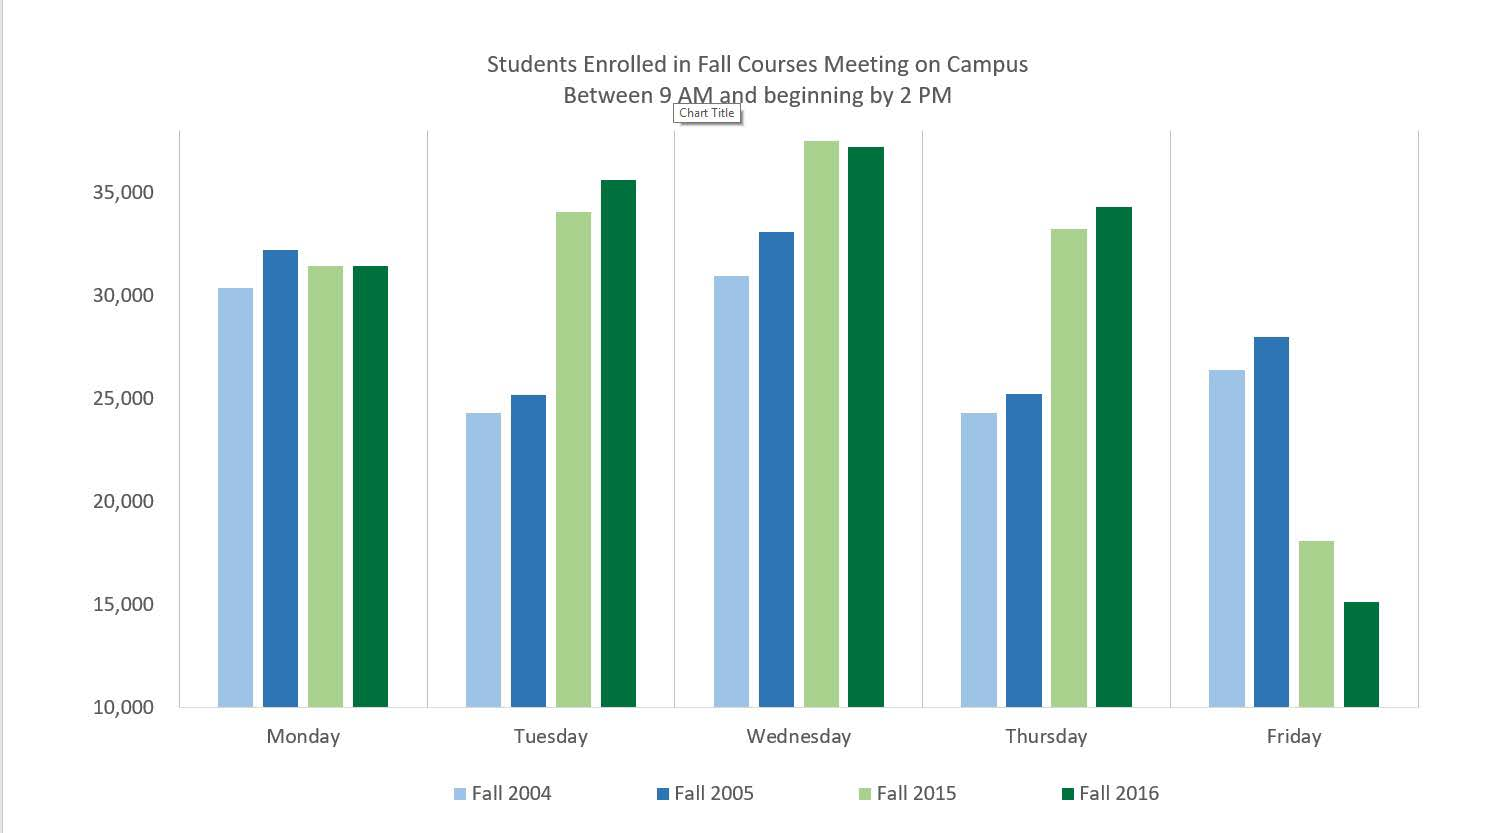 Chart showing students in on-campus classes from fall 2004 through fall 2016,